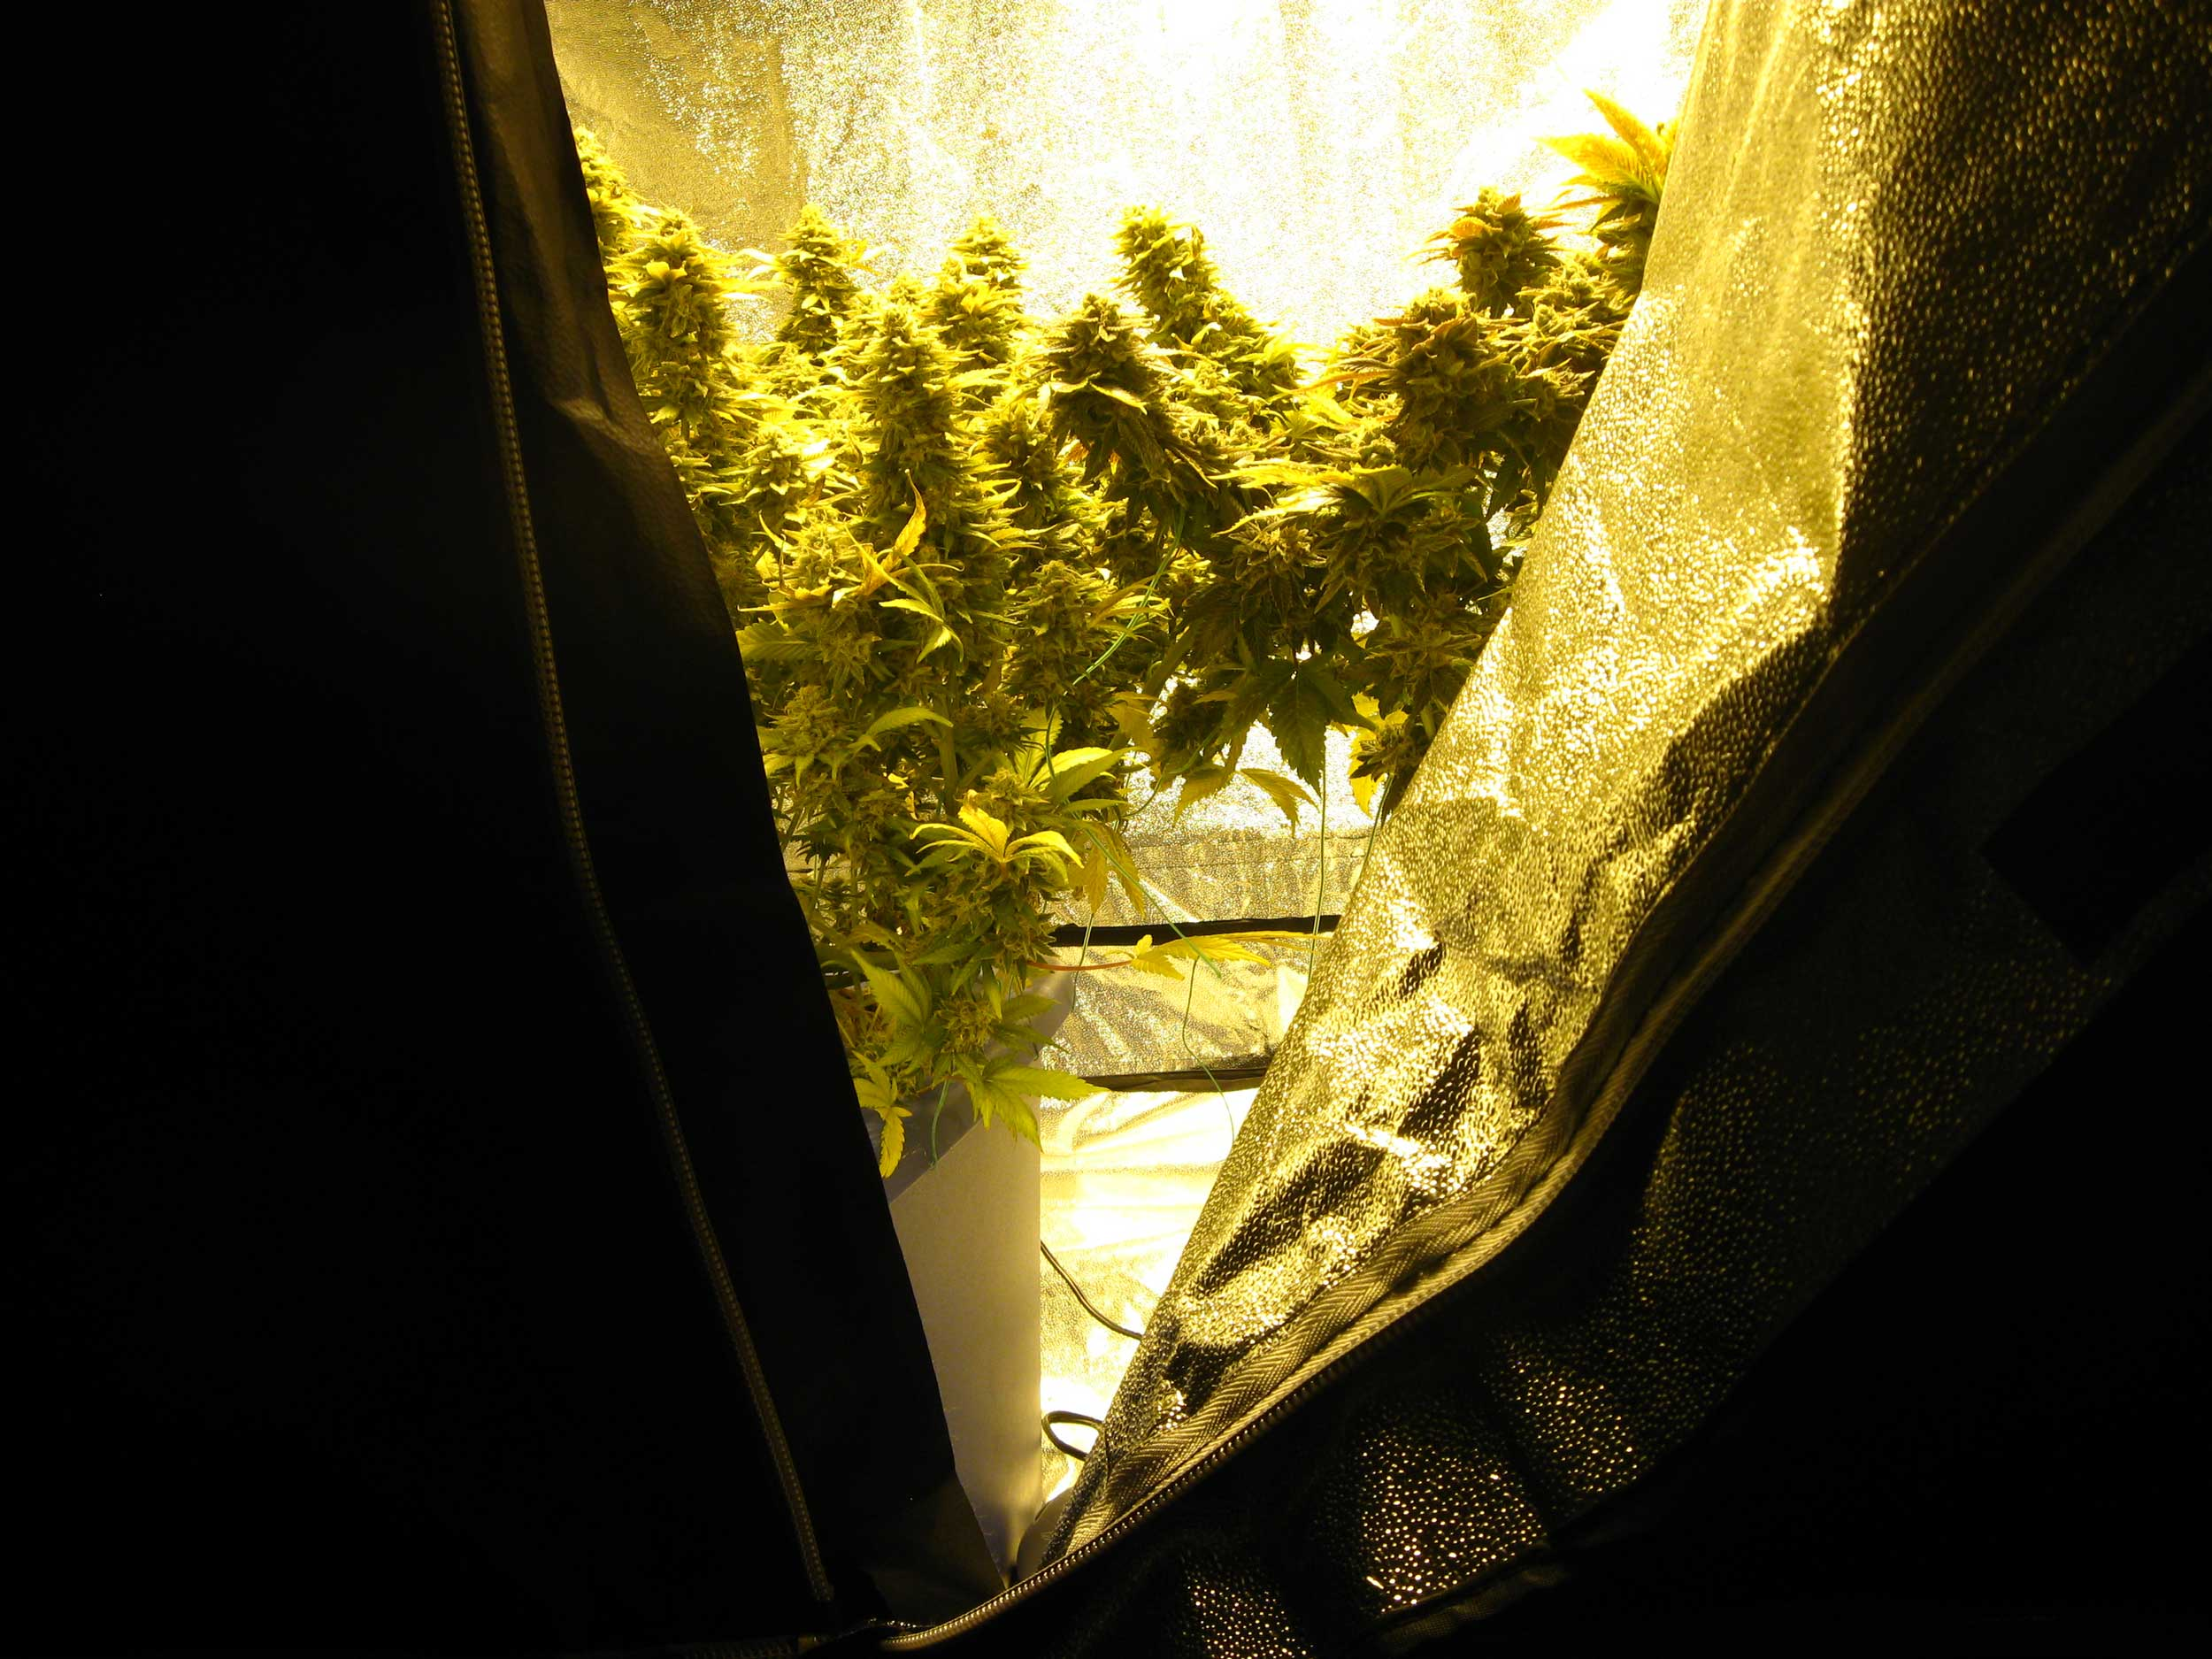 those mh because light quick are lights m about blackberry one first diaries week i still lighting switch done auto hps to a mixed finishing harvest my automatic using kush northern last in once will